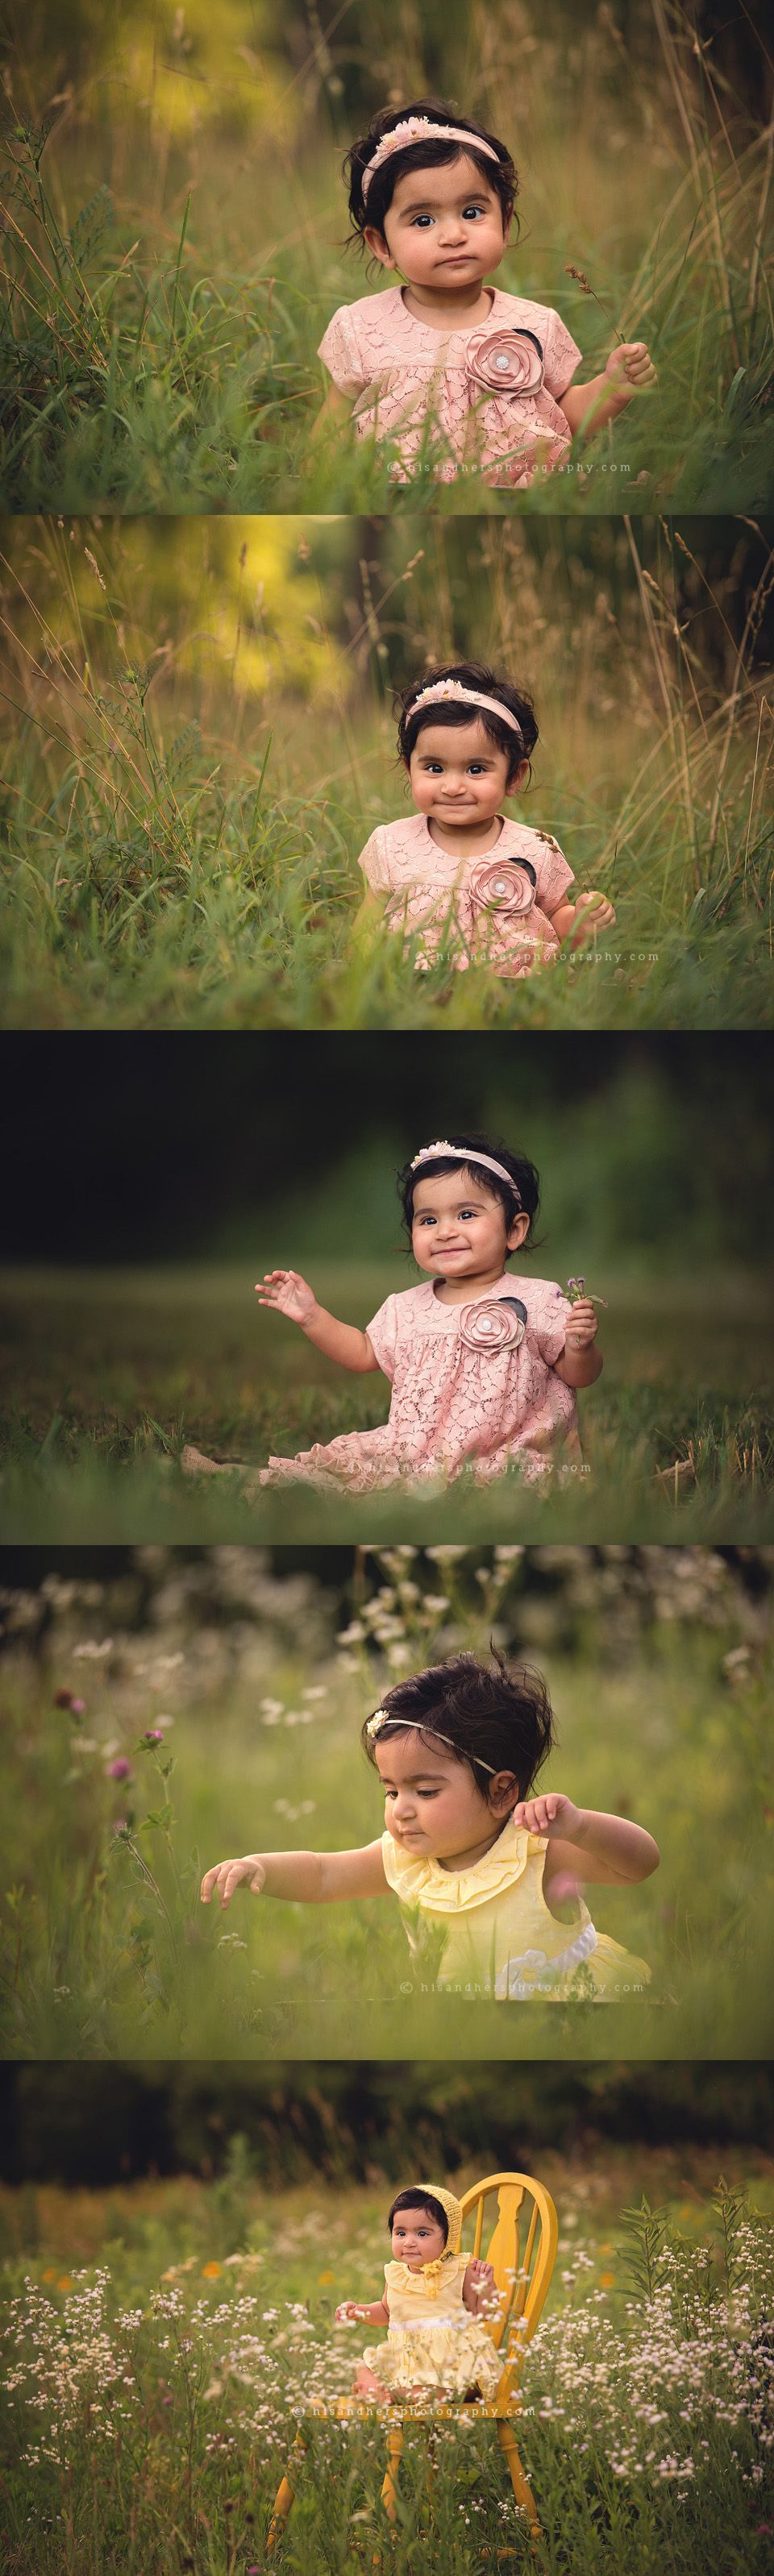 des moines iowa 6 months 7 8 9 sitting session photographer photography iowa baby photographer